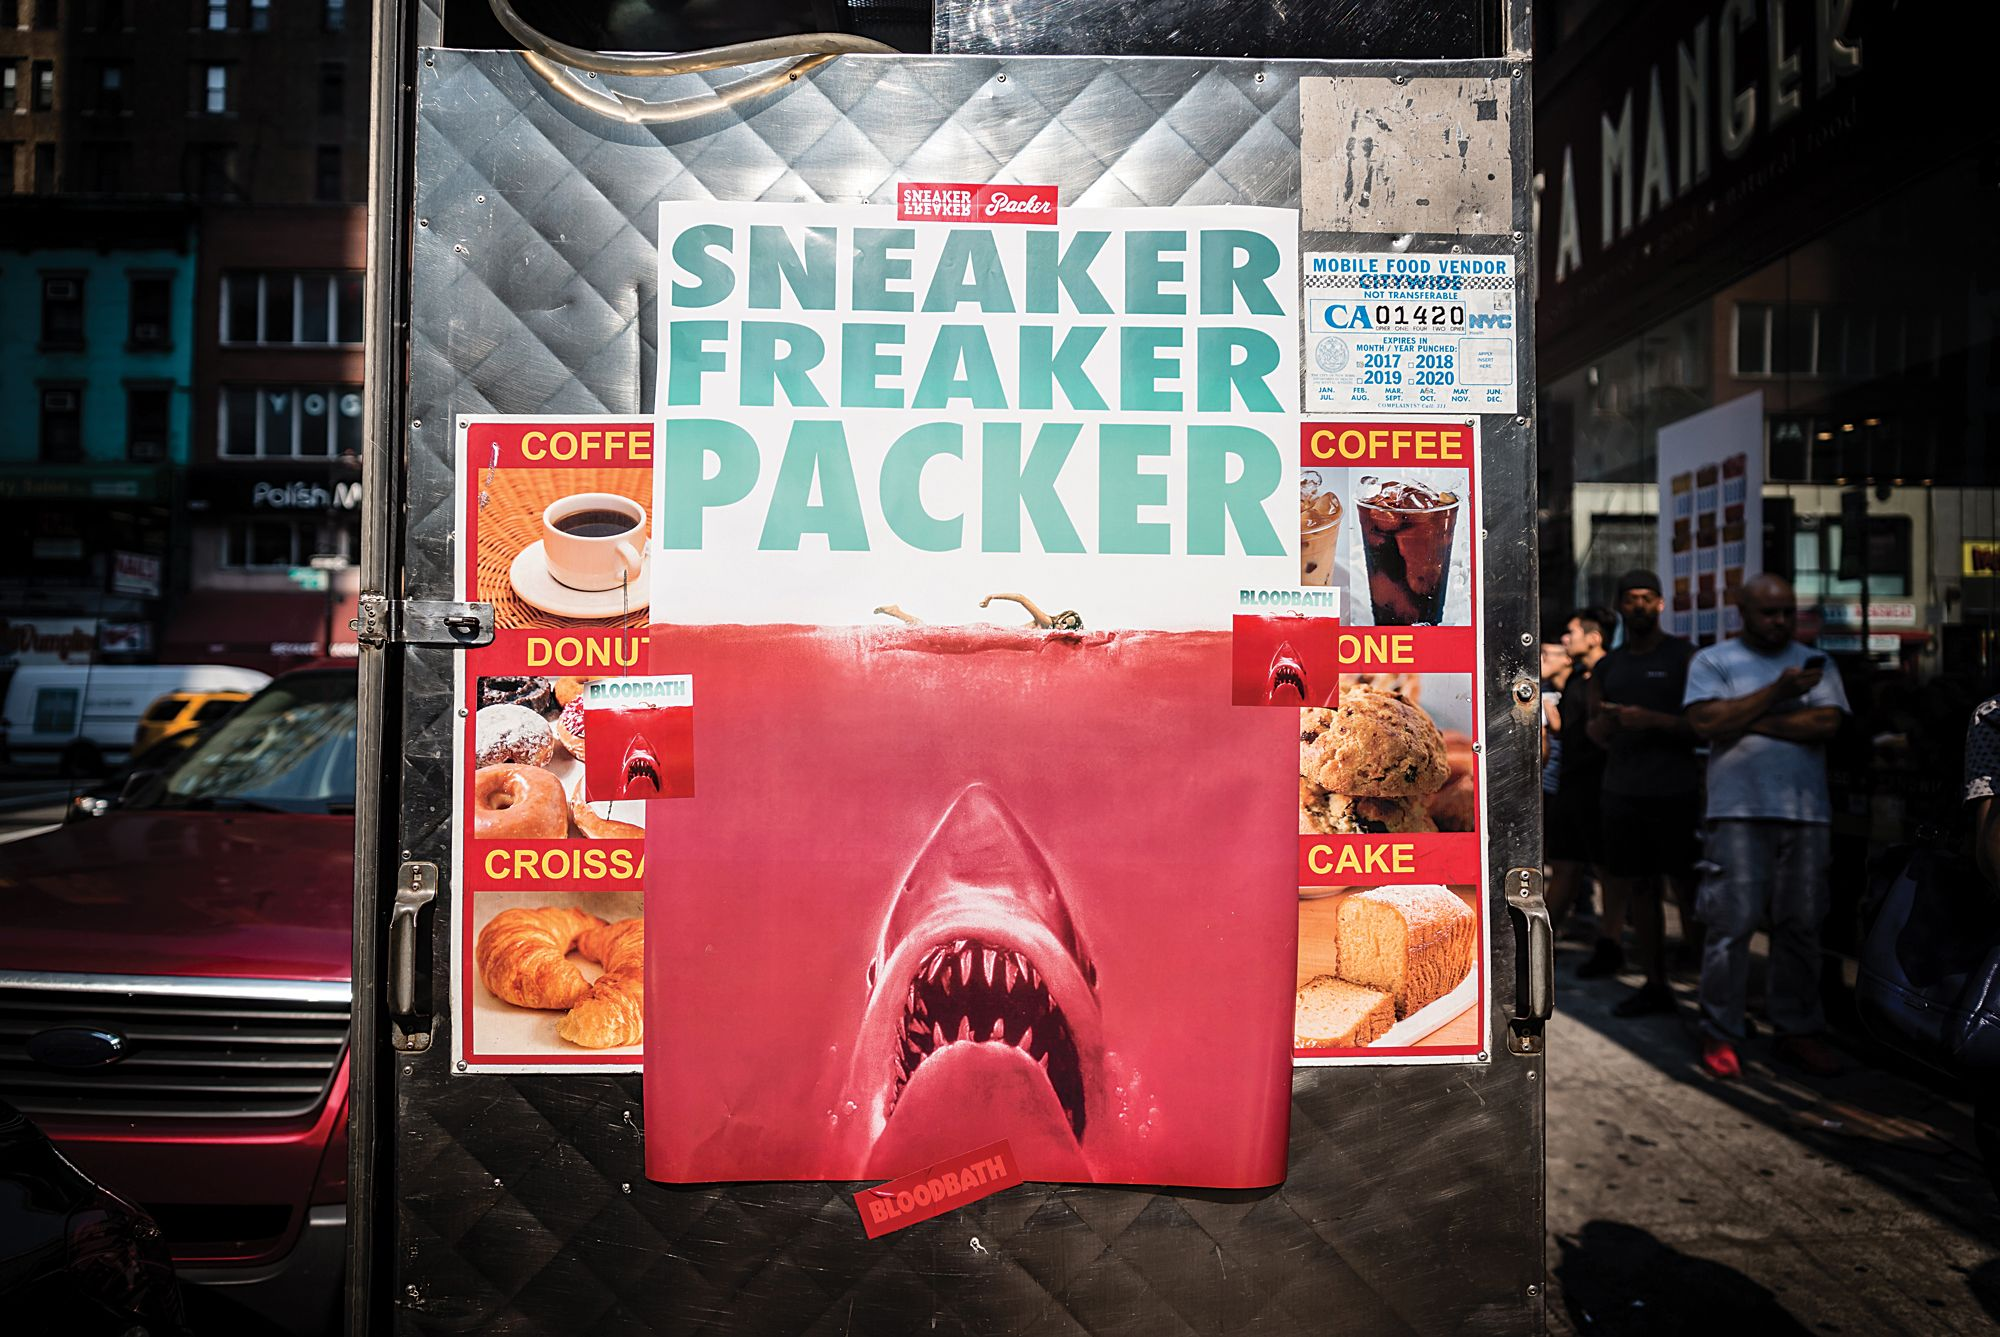 Sneaker Freaker x Packer x PUMA 'Bloodbath' launch in New York